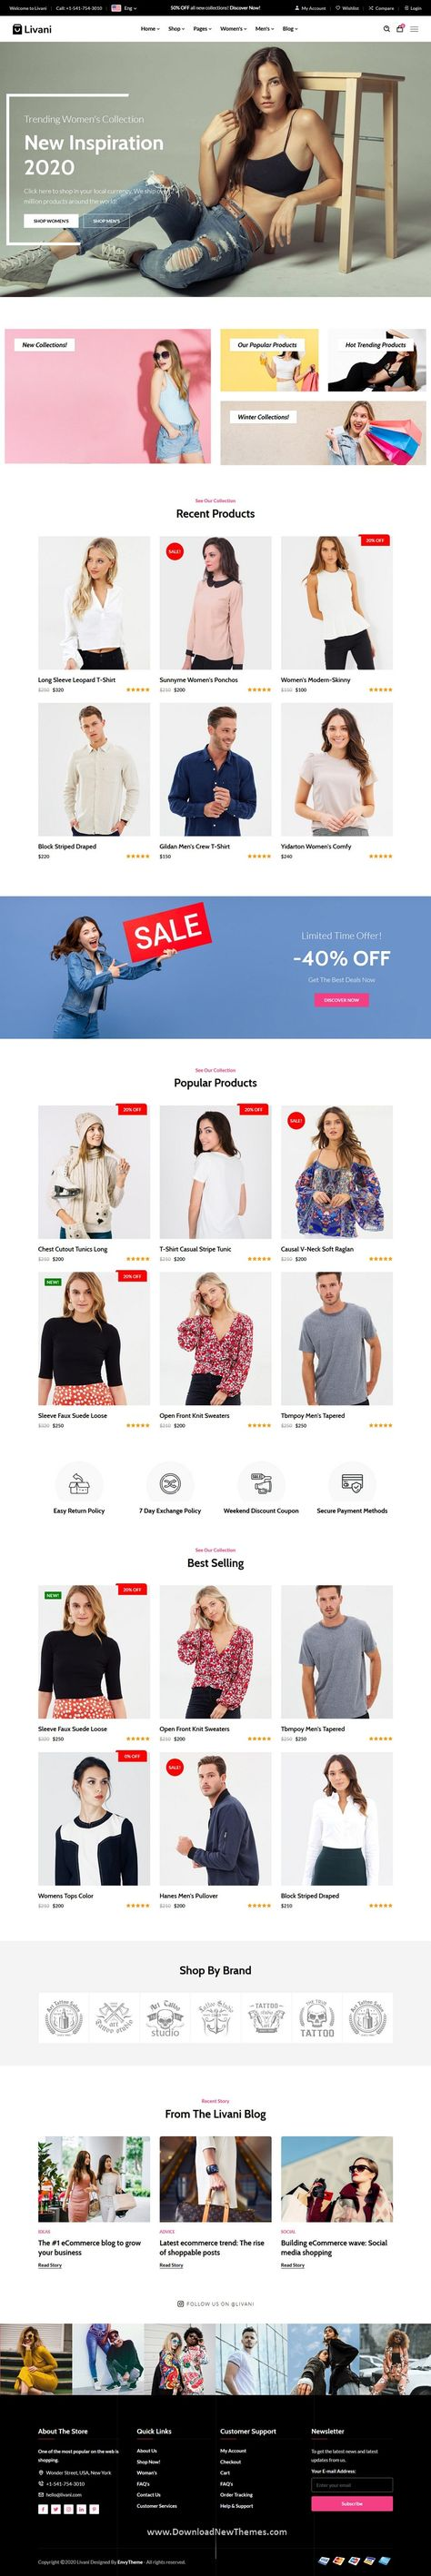 React Next eCommerce Store + Admin Panel Template